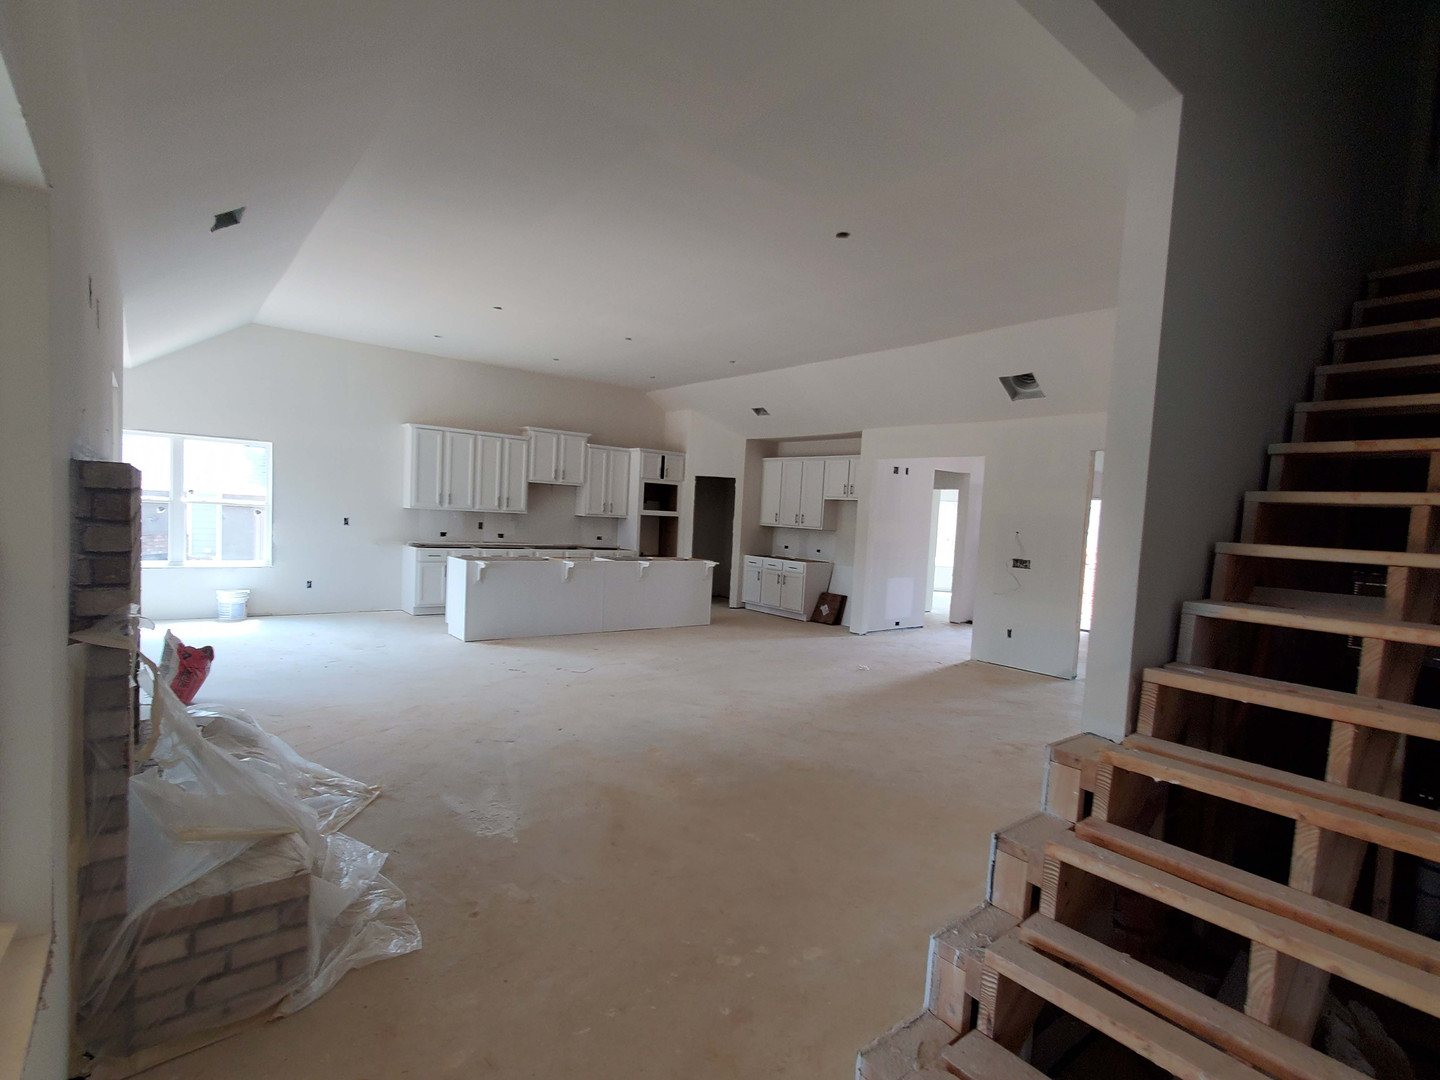 Great room and kitchen from owners bedrooms view